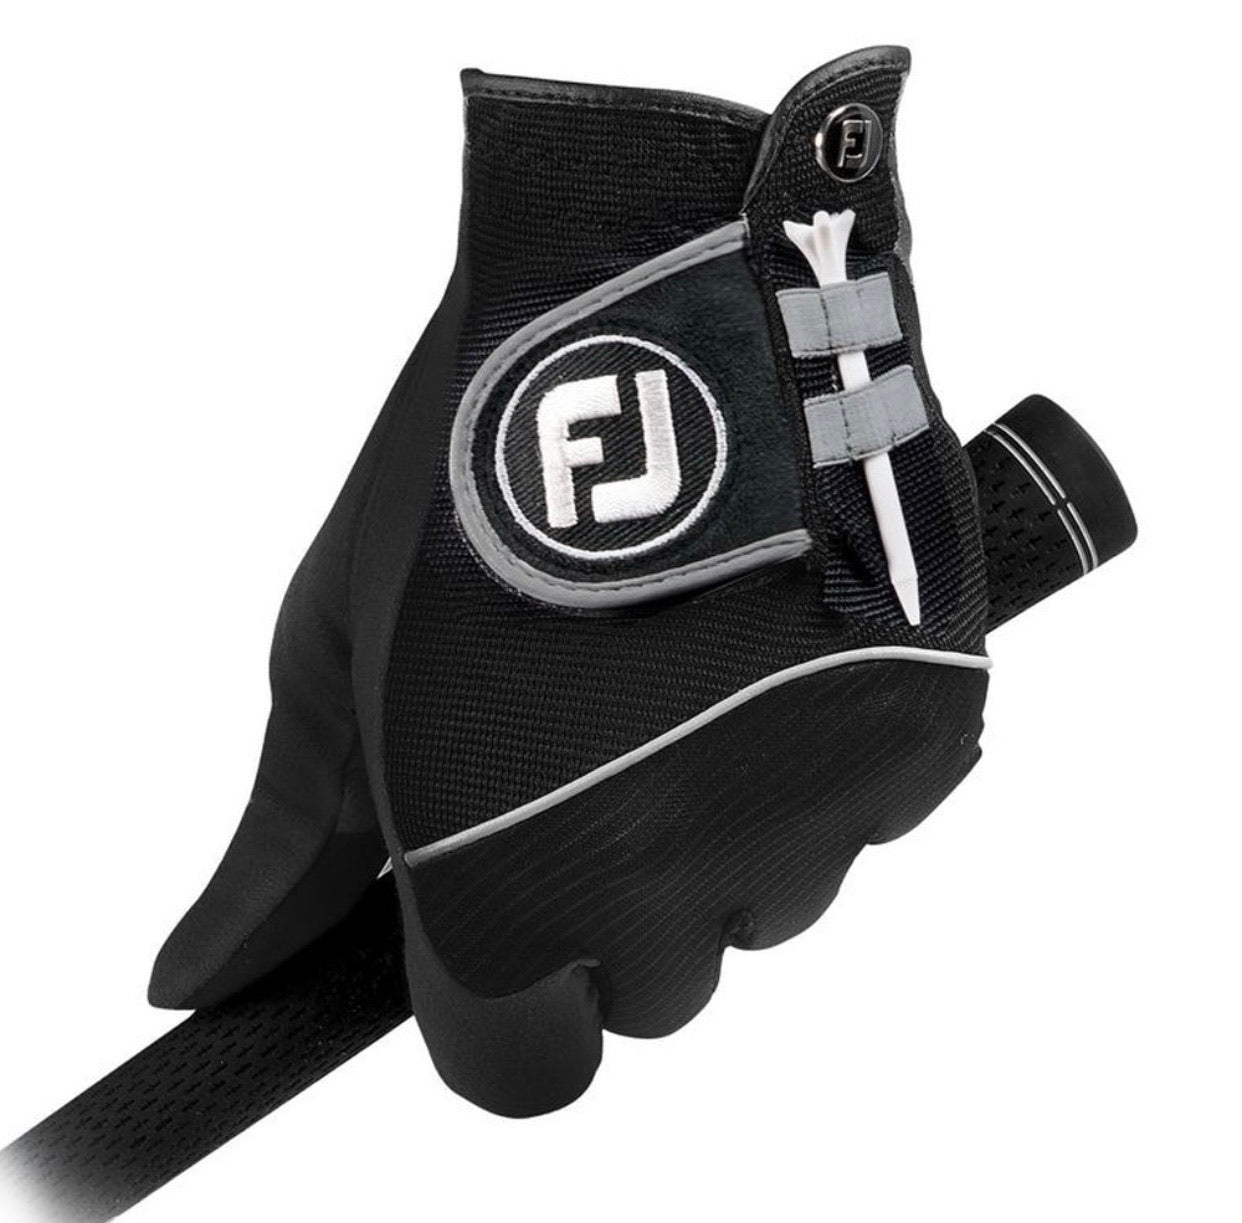 FootJoy RainGrip golf glove - 66556E